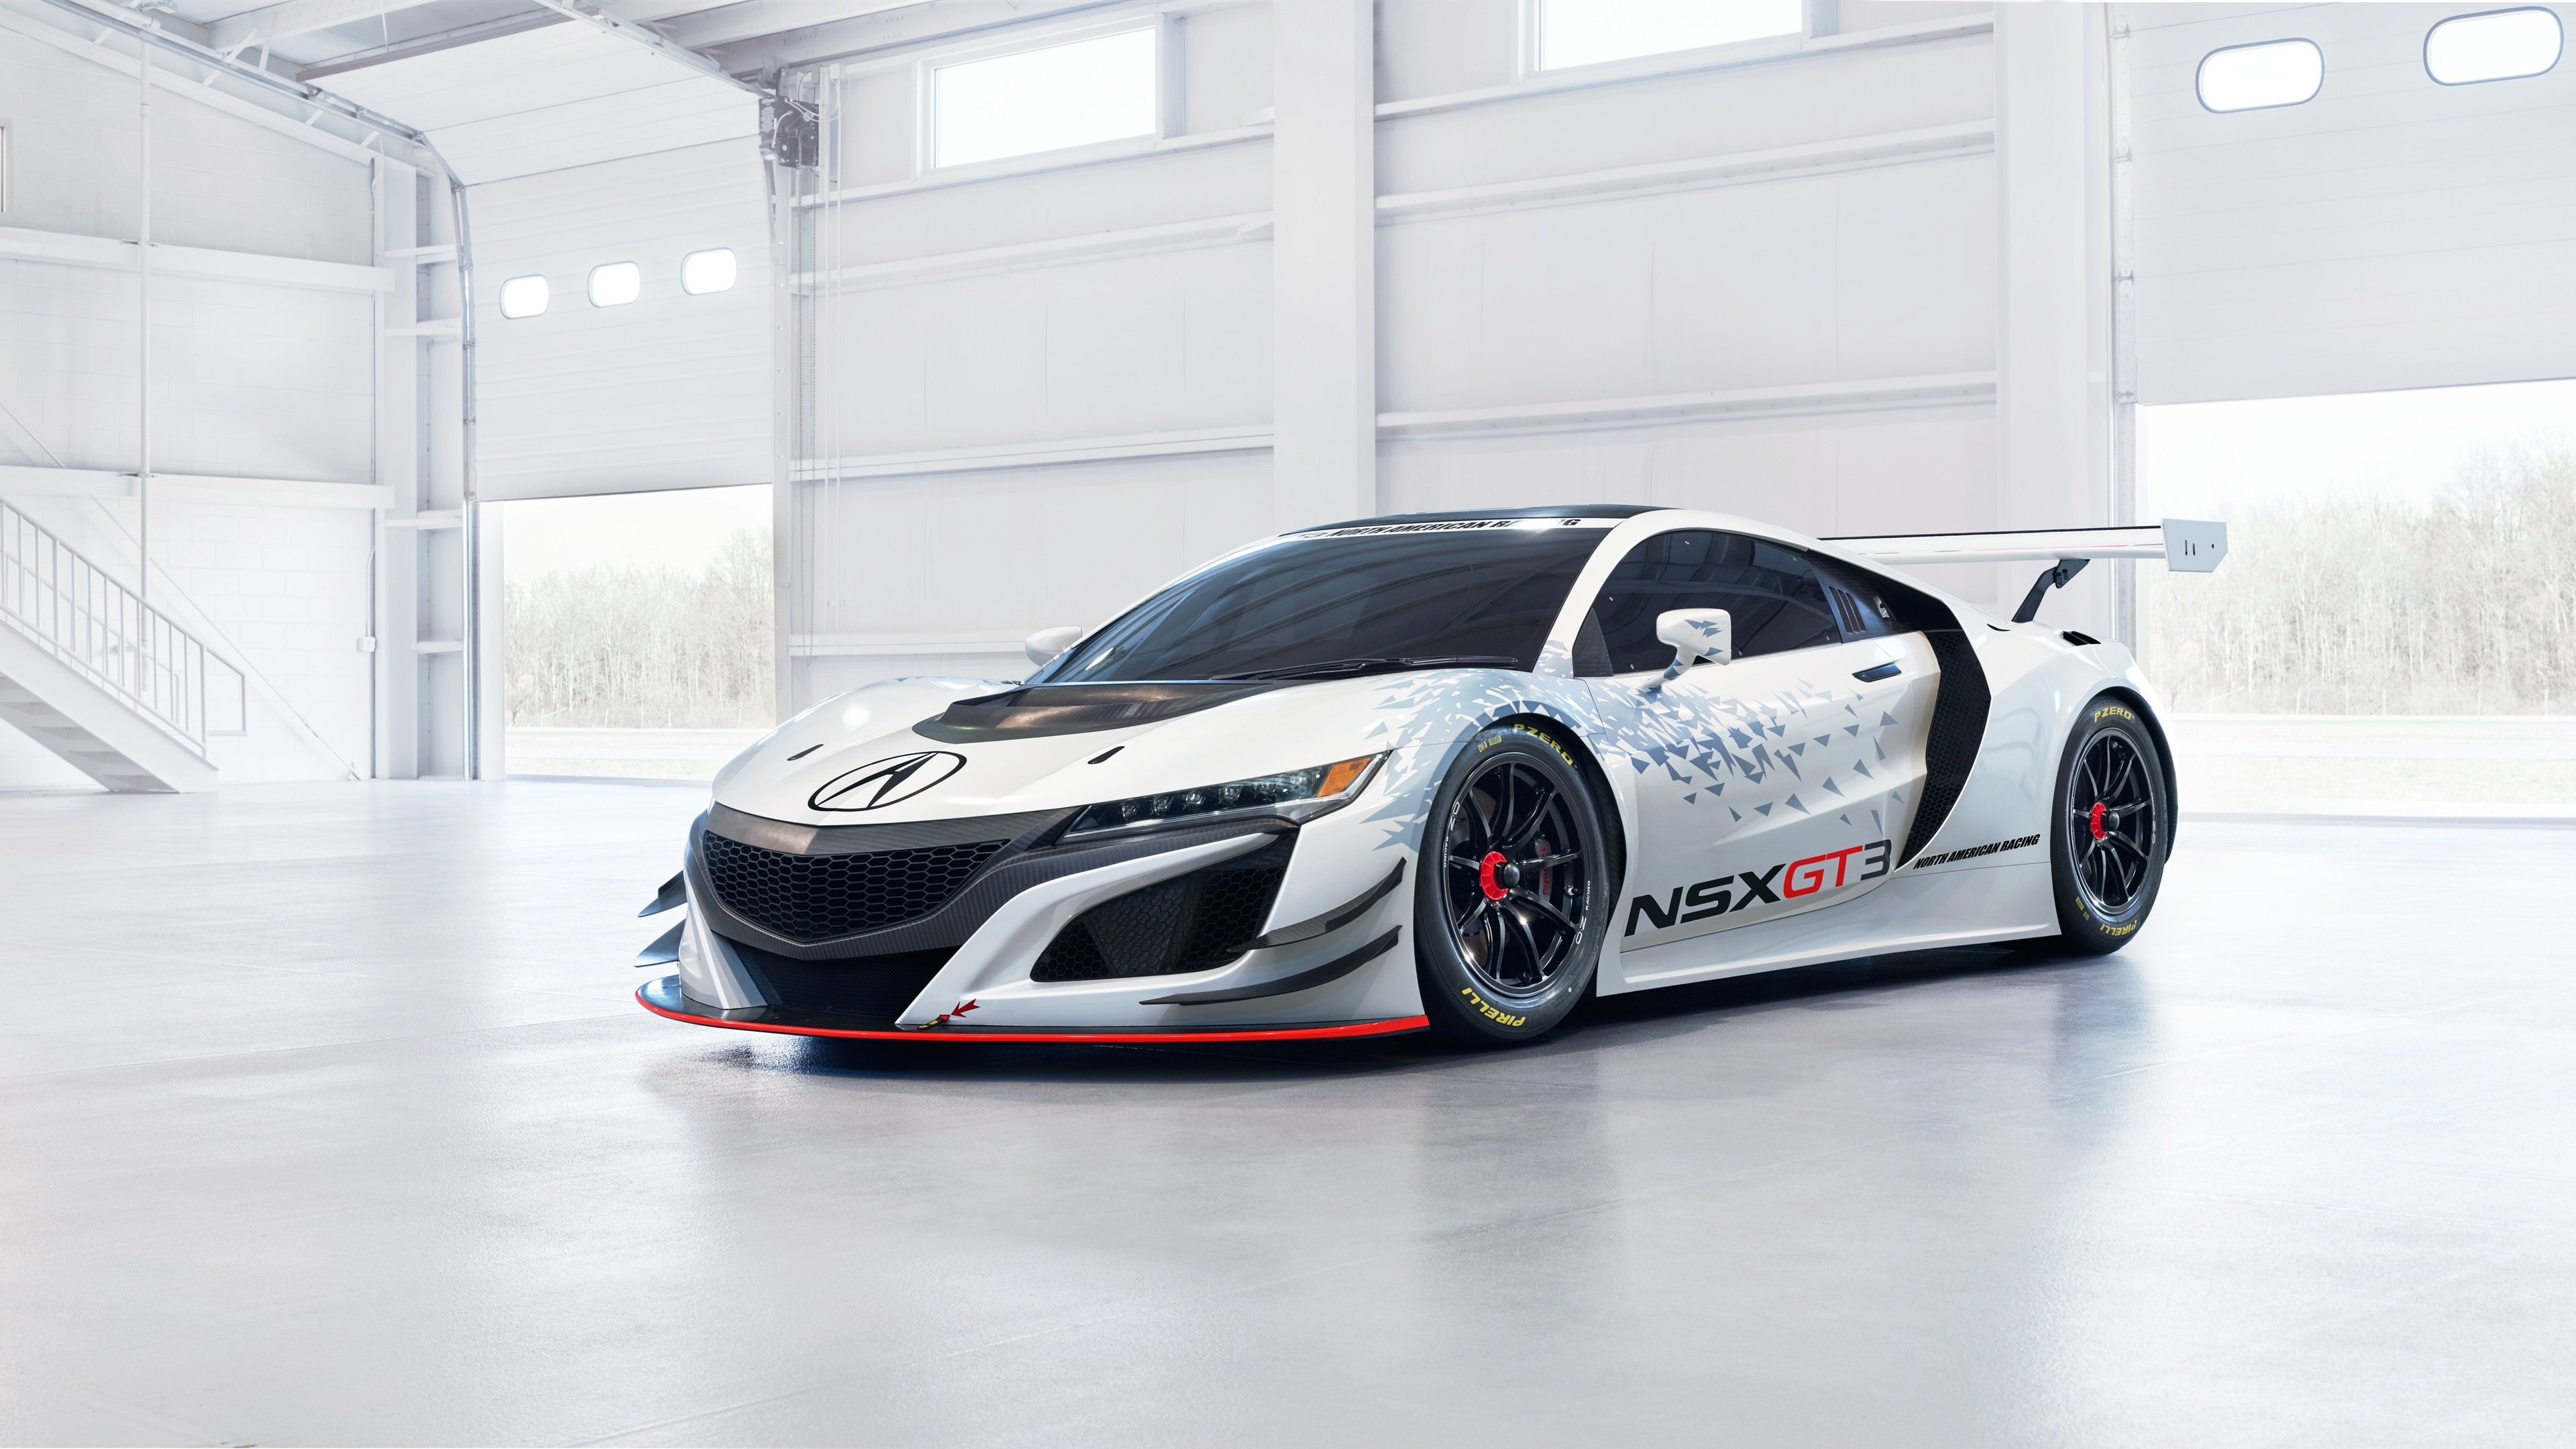 acura nsx gt3 5k 2018 1539114495 - Acura Nsx Gt3 5k 2018 - honda wallpapers, hd-wallpapers, cars wallpapers, acura nsx wallpapers, acura nsx gt3 wallpapers, 5k wallpapers, 4k-wallpapers, 2017 cars wallpapers